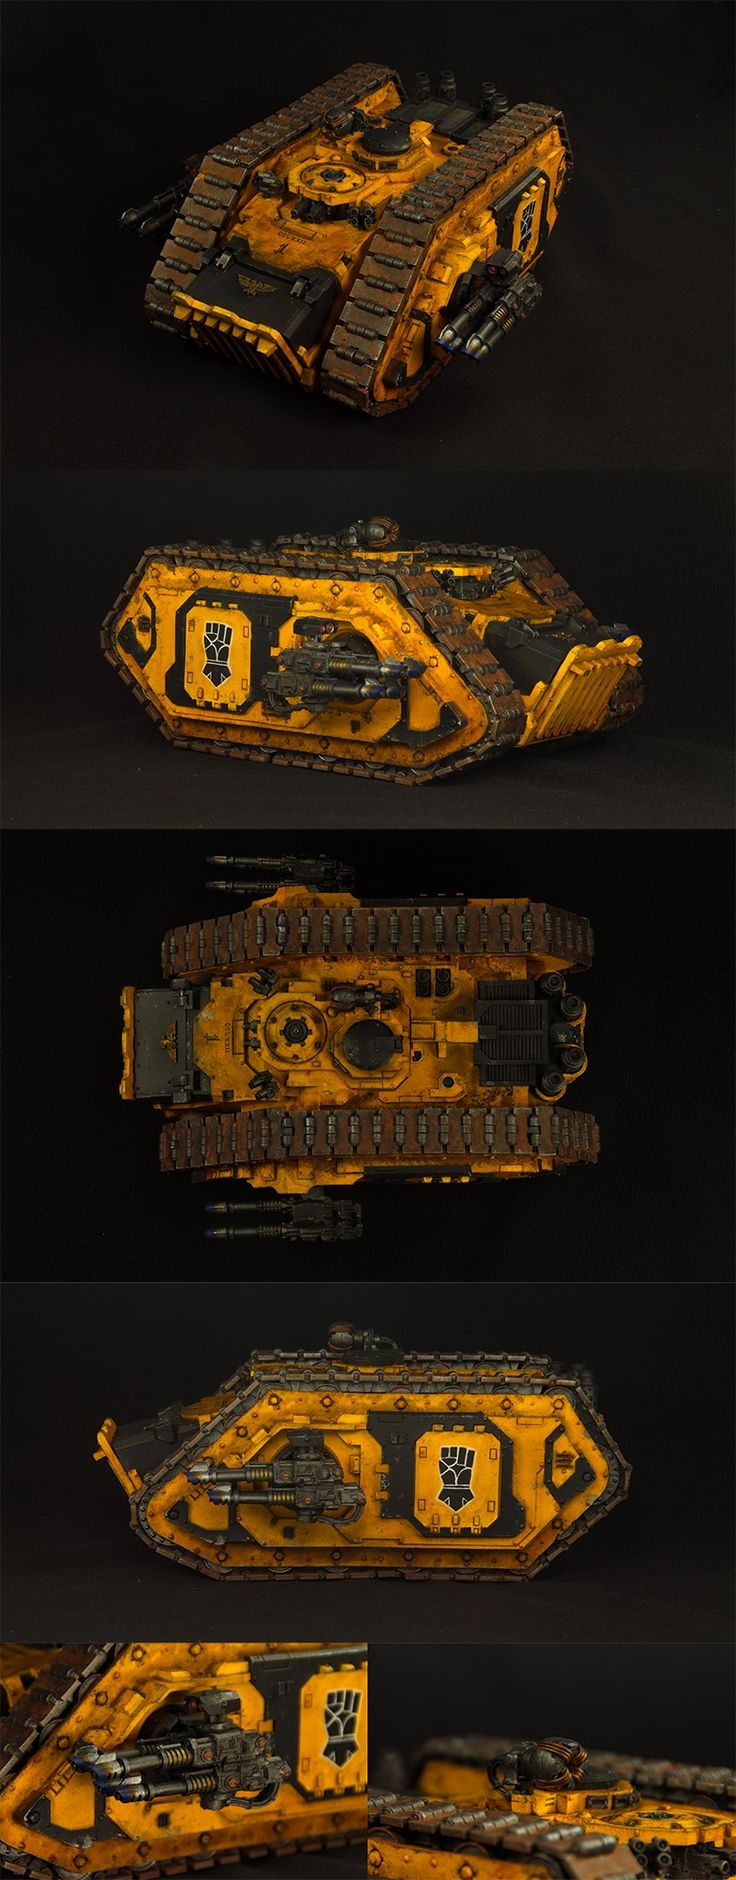 Imperial Fists - Spartan Assault Tank